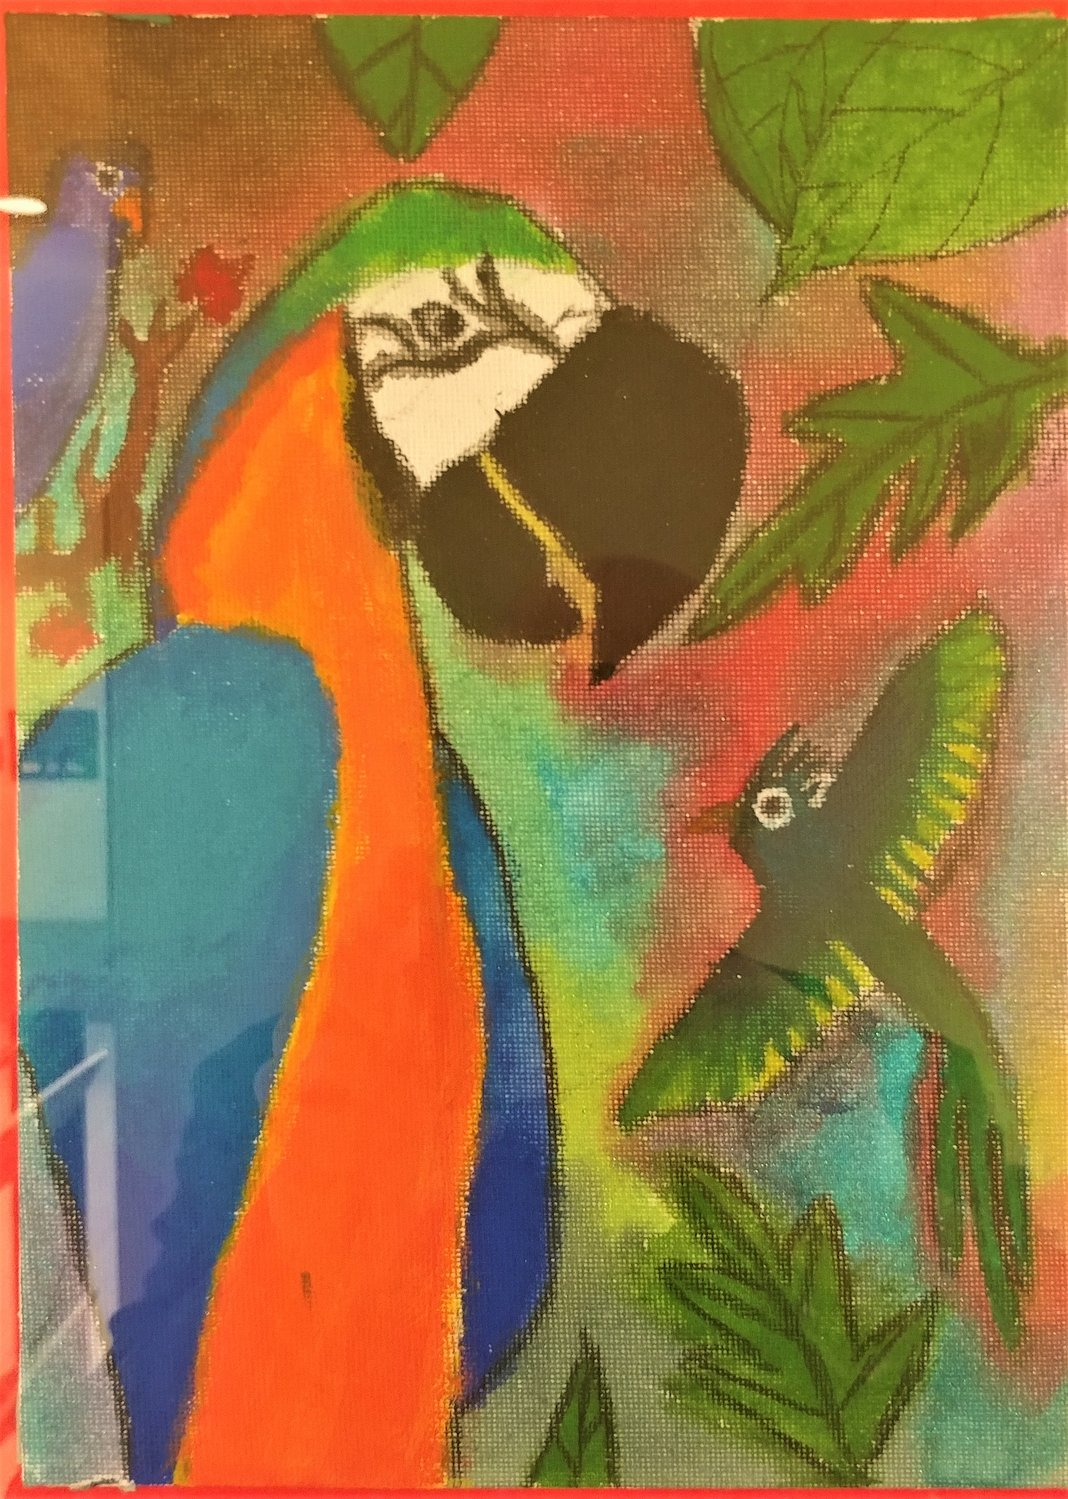 Parrot, by Tito Flores, fifth grader at University Hills Elementary School.